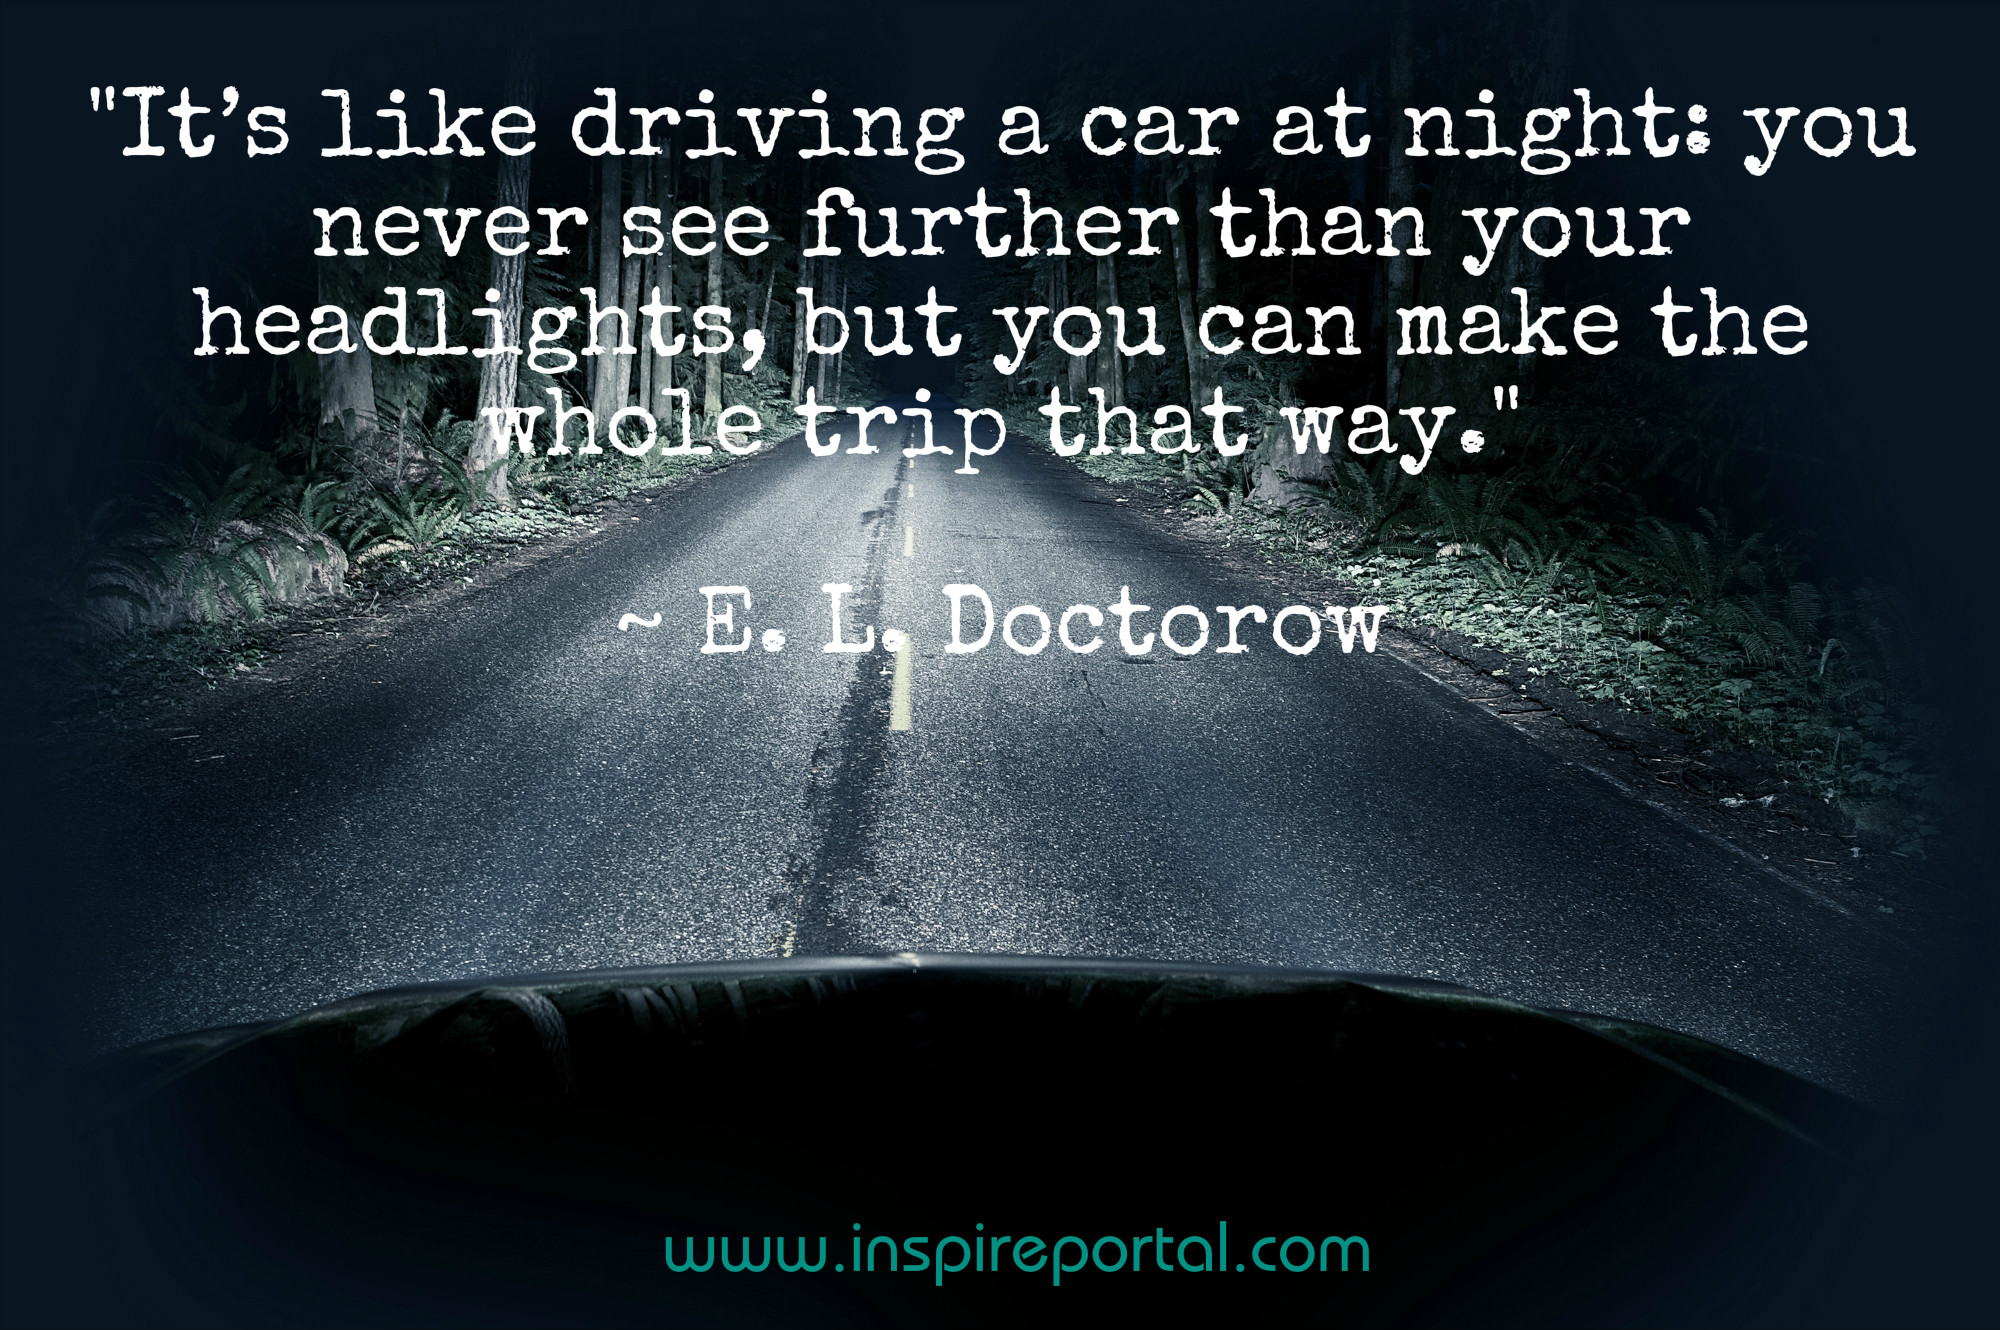 Famous Night Quotes: 10 Brilliant Tips For Writing Fiction Inspired By Famous